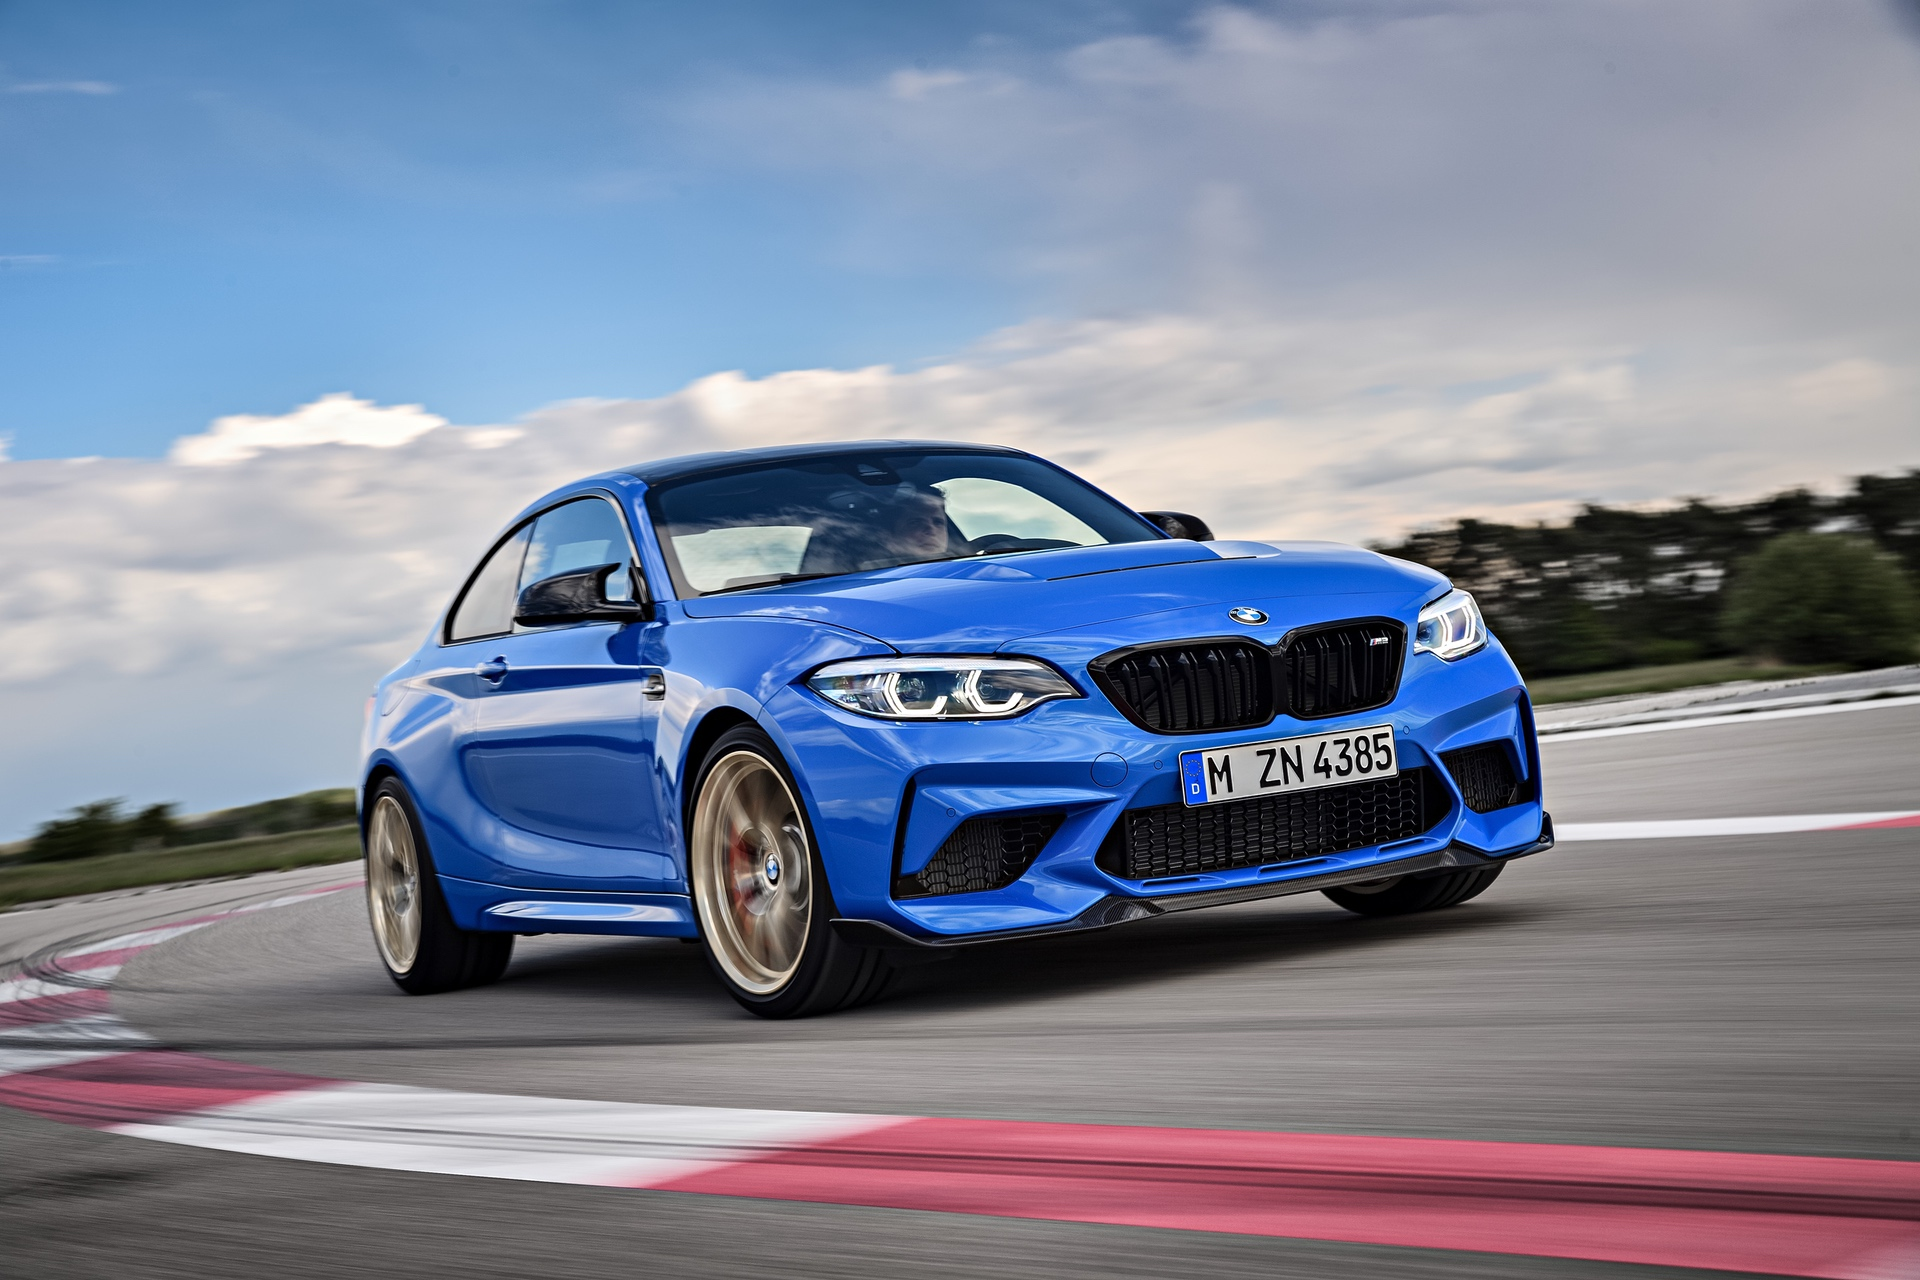 BMW M2 CS photos images 24